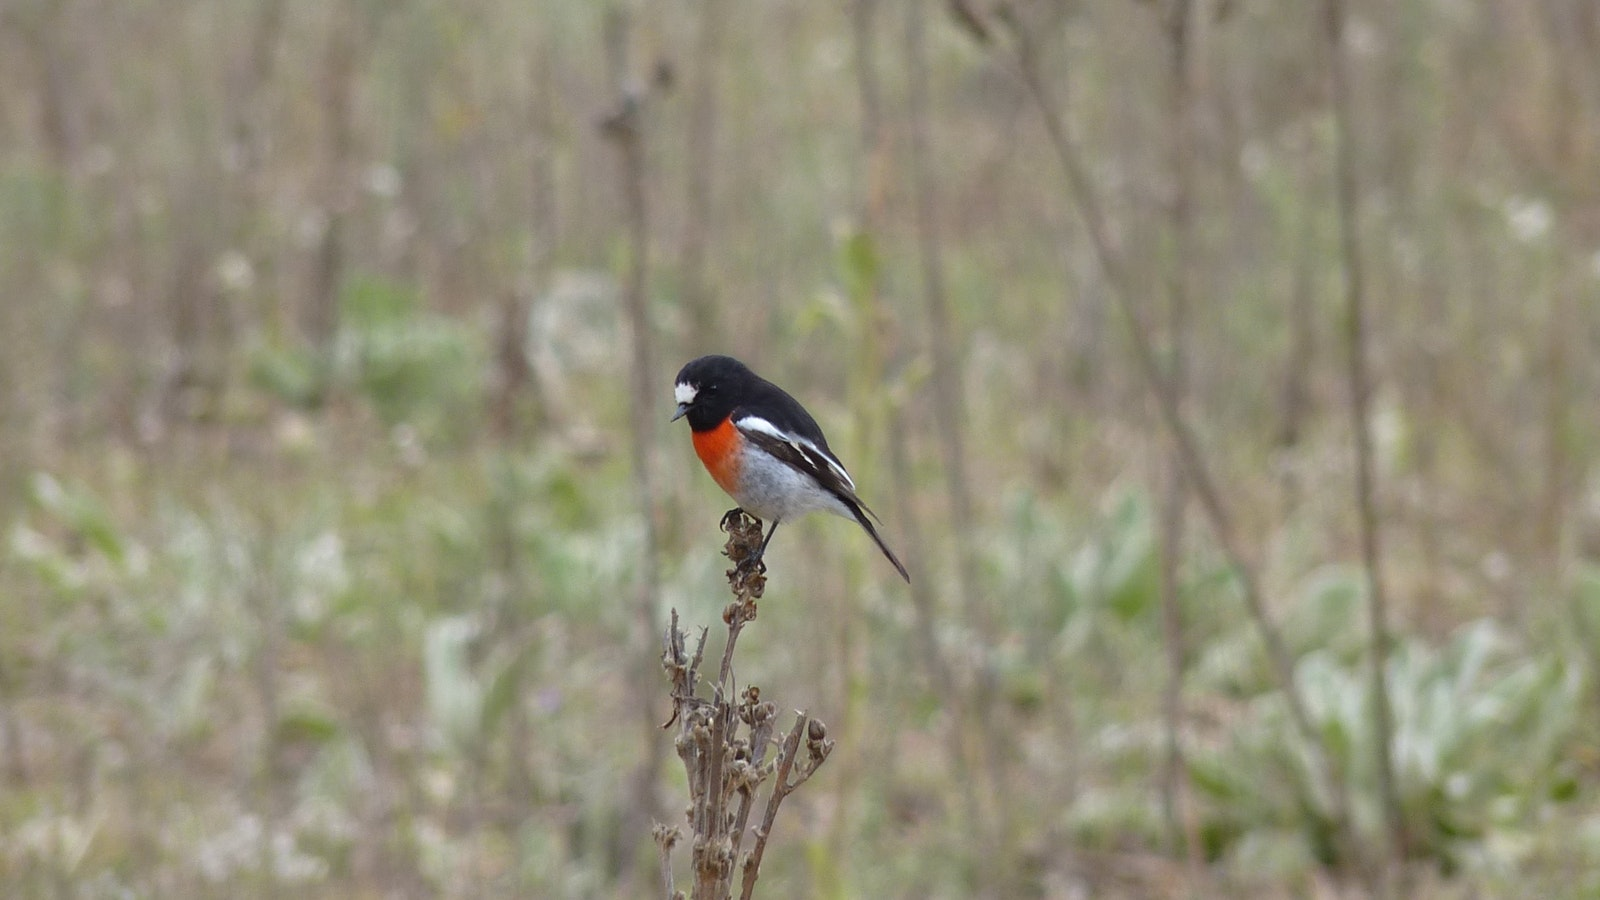 Scarlet Robin, one of the delightful woodland birds of the Snowy River Valley